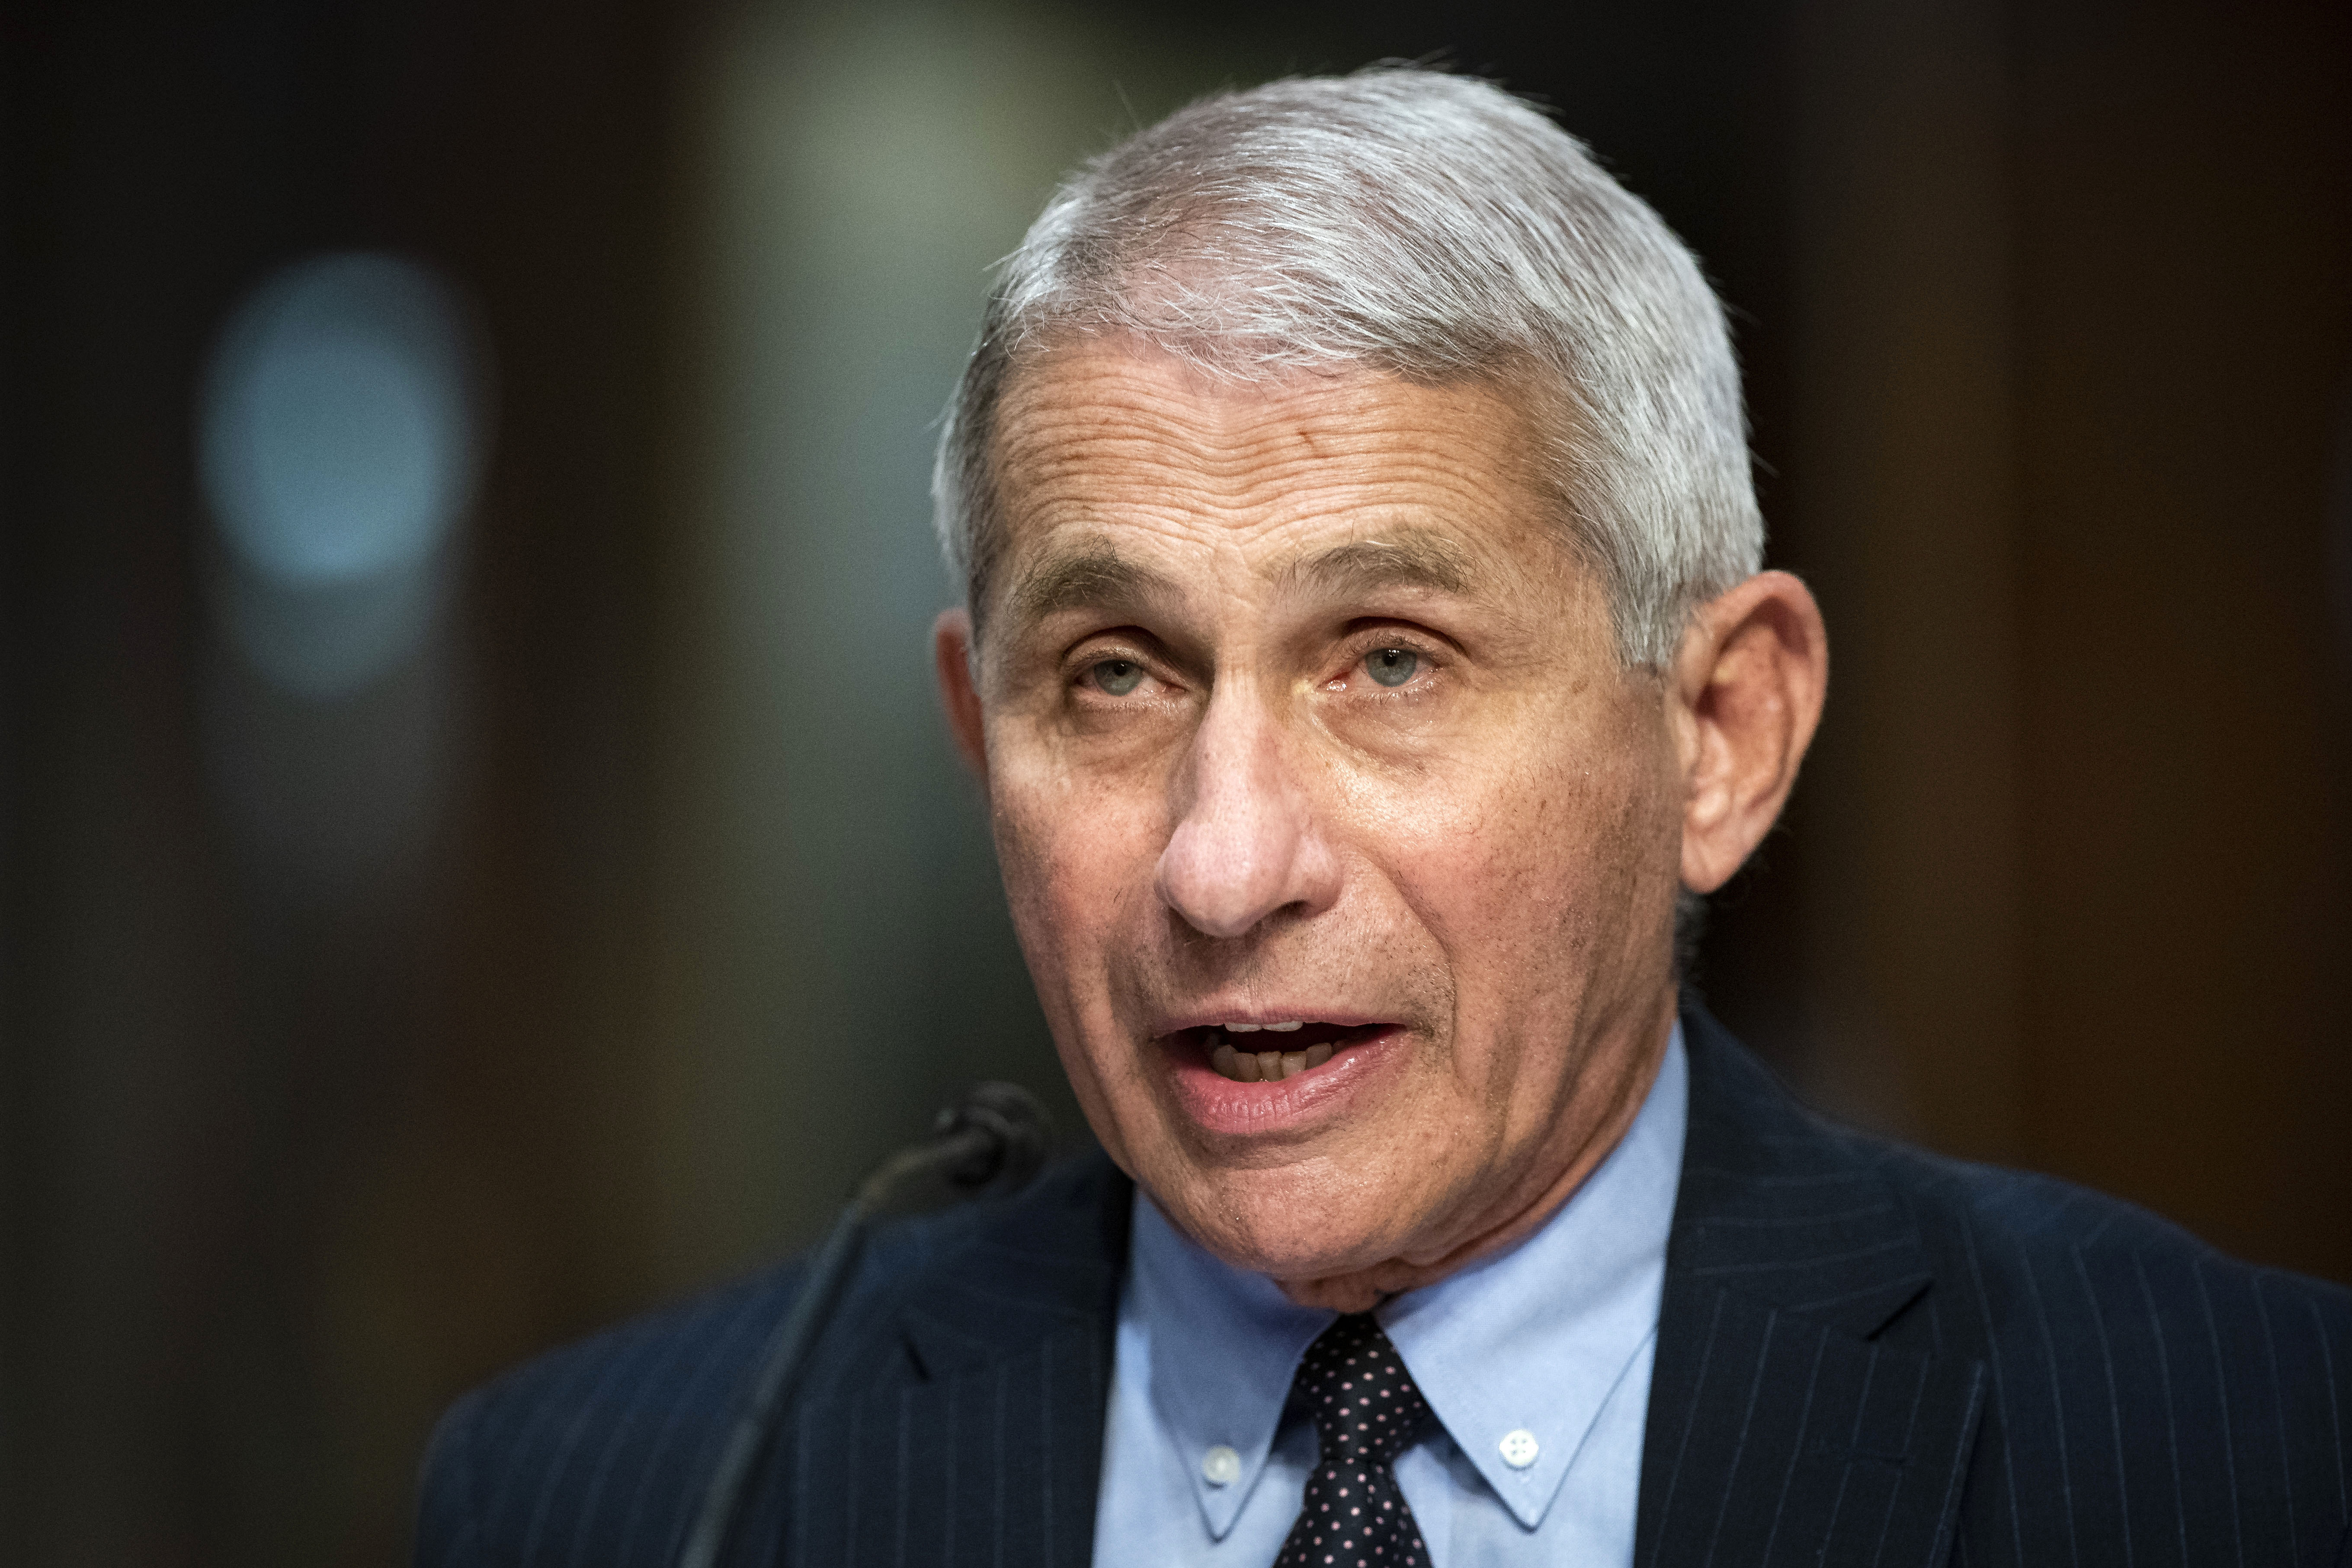 Dr. Anthony Fauci, director of the National Institute of Allergy and Infectious Diseases, speaks during a hearing in Washington, DC, on June 30.